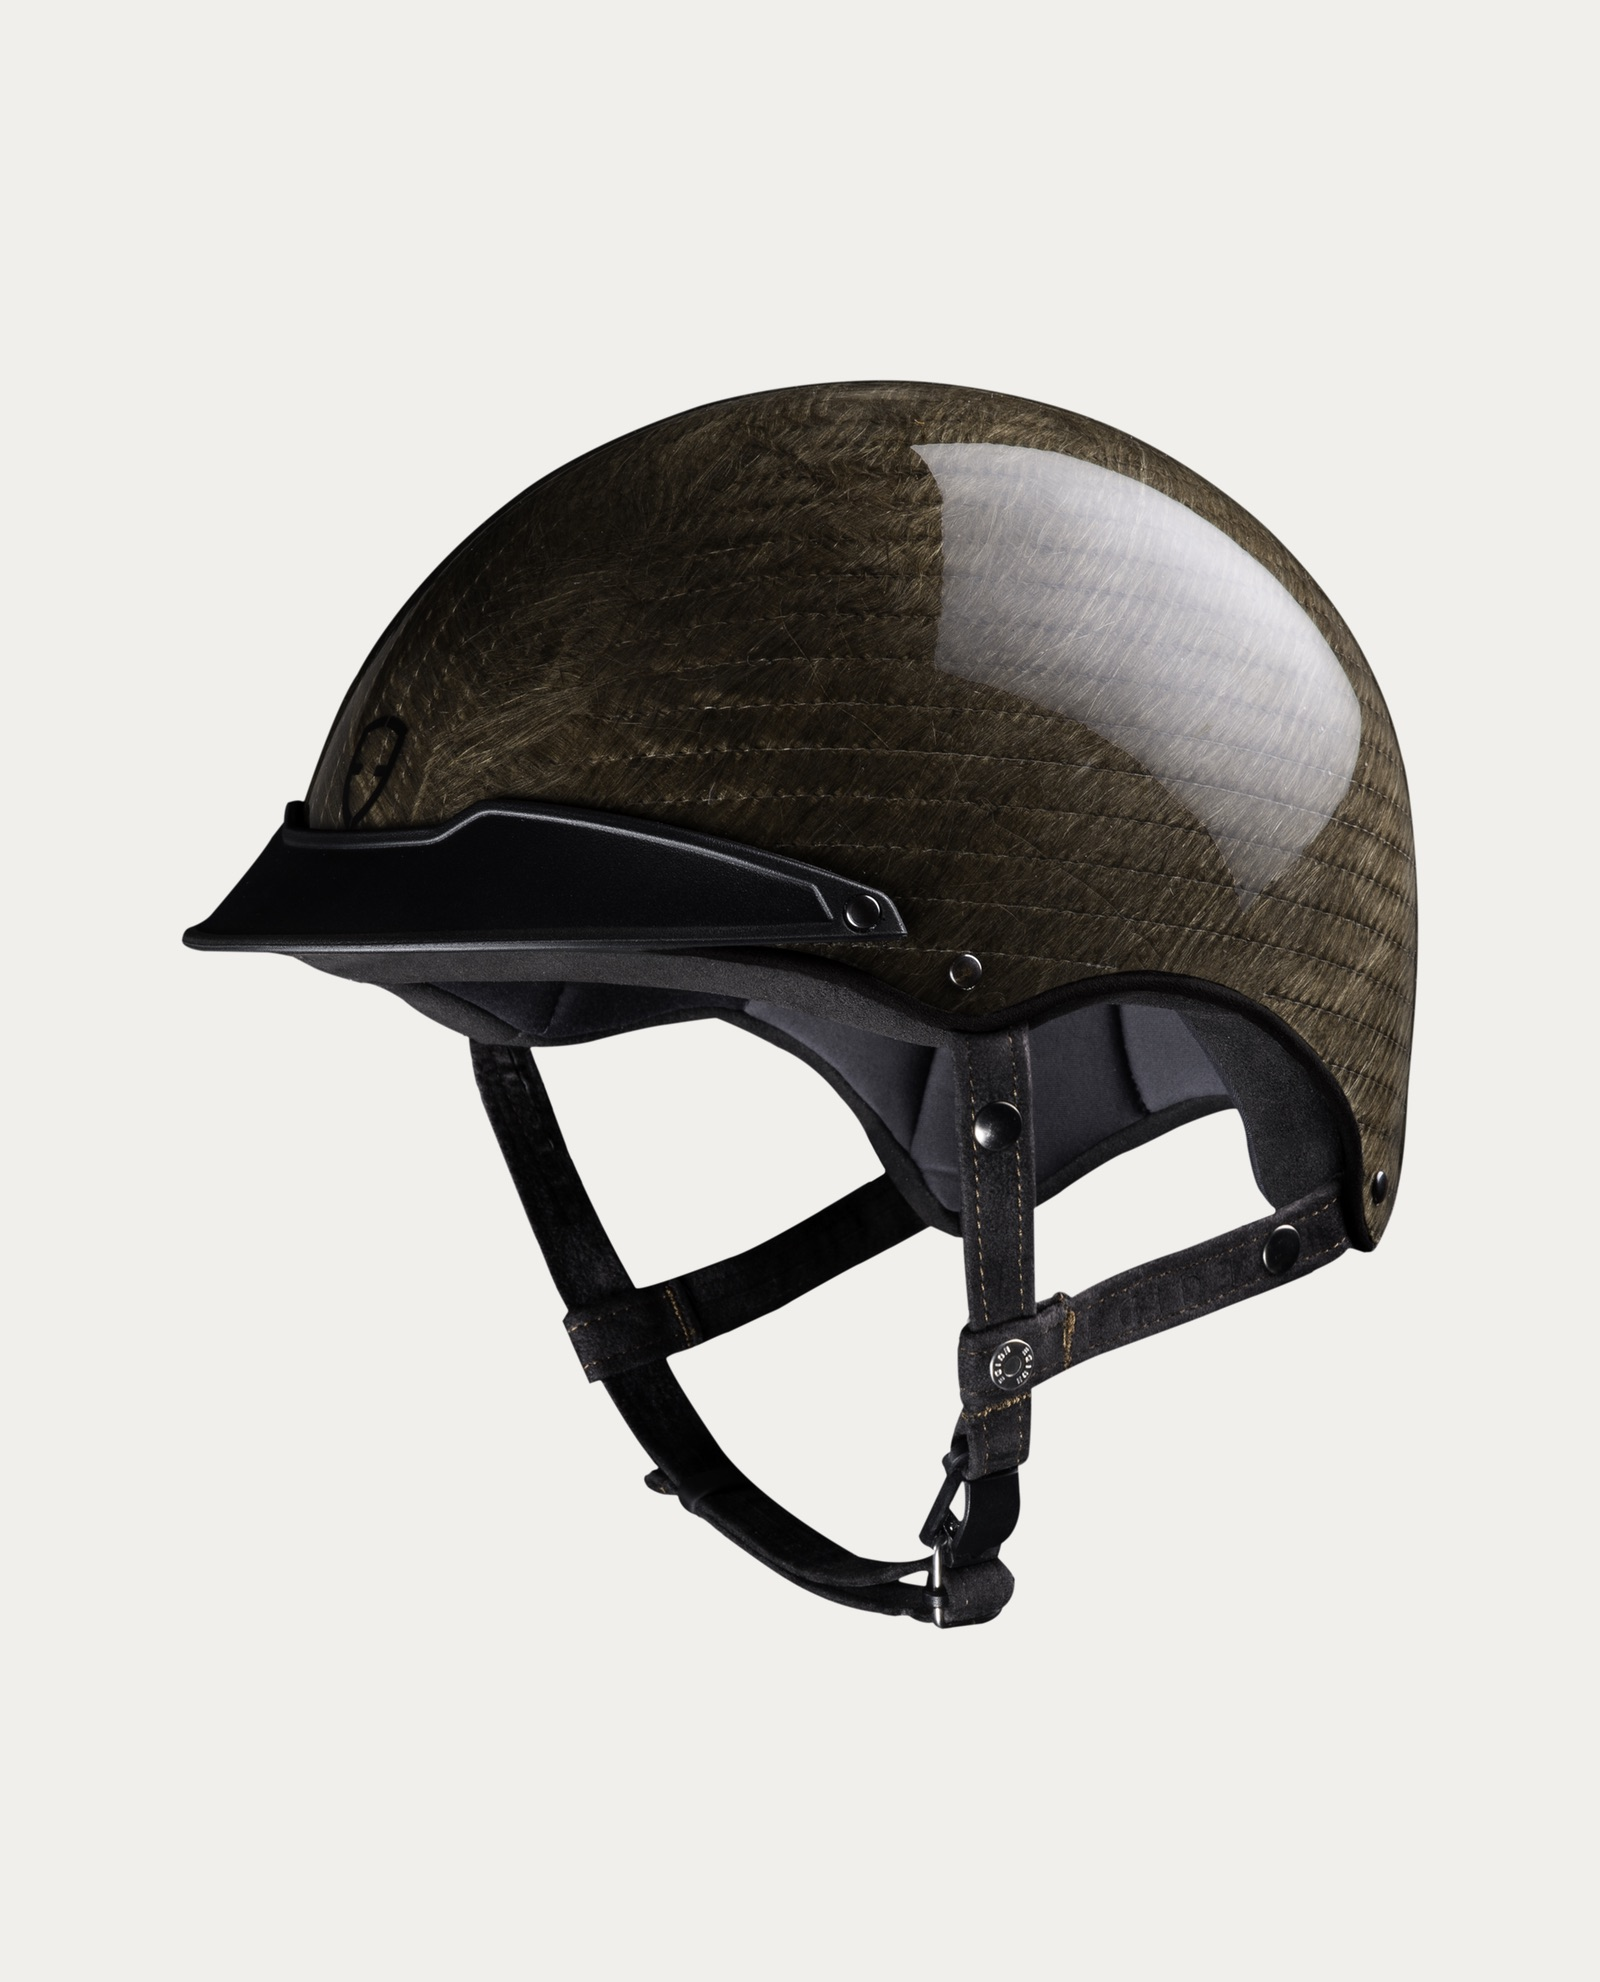 casque_velo_egide_apollo_lin